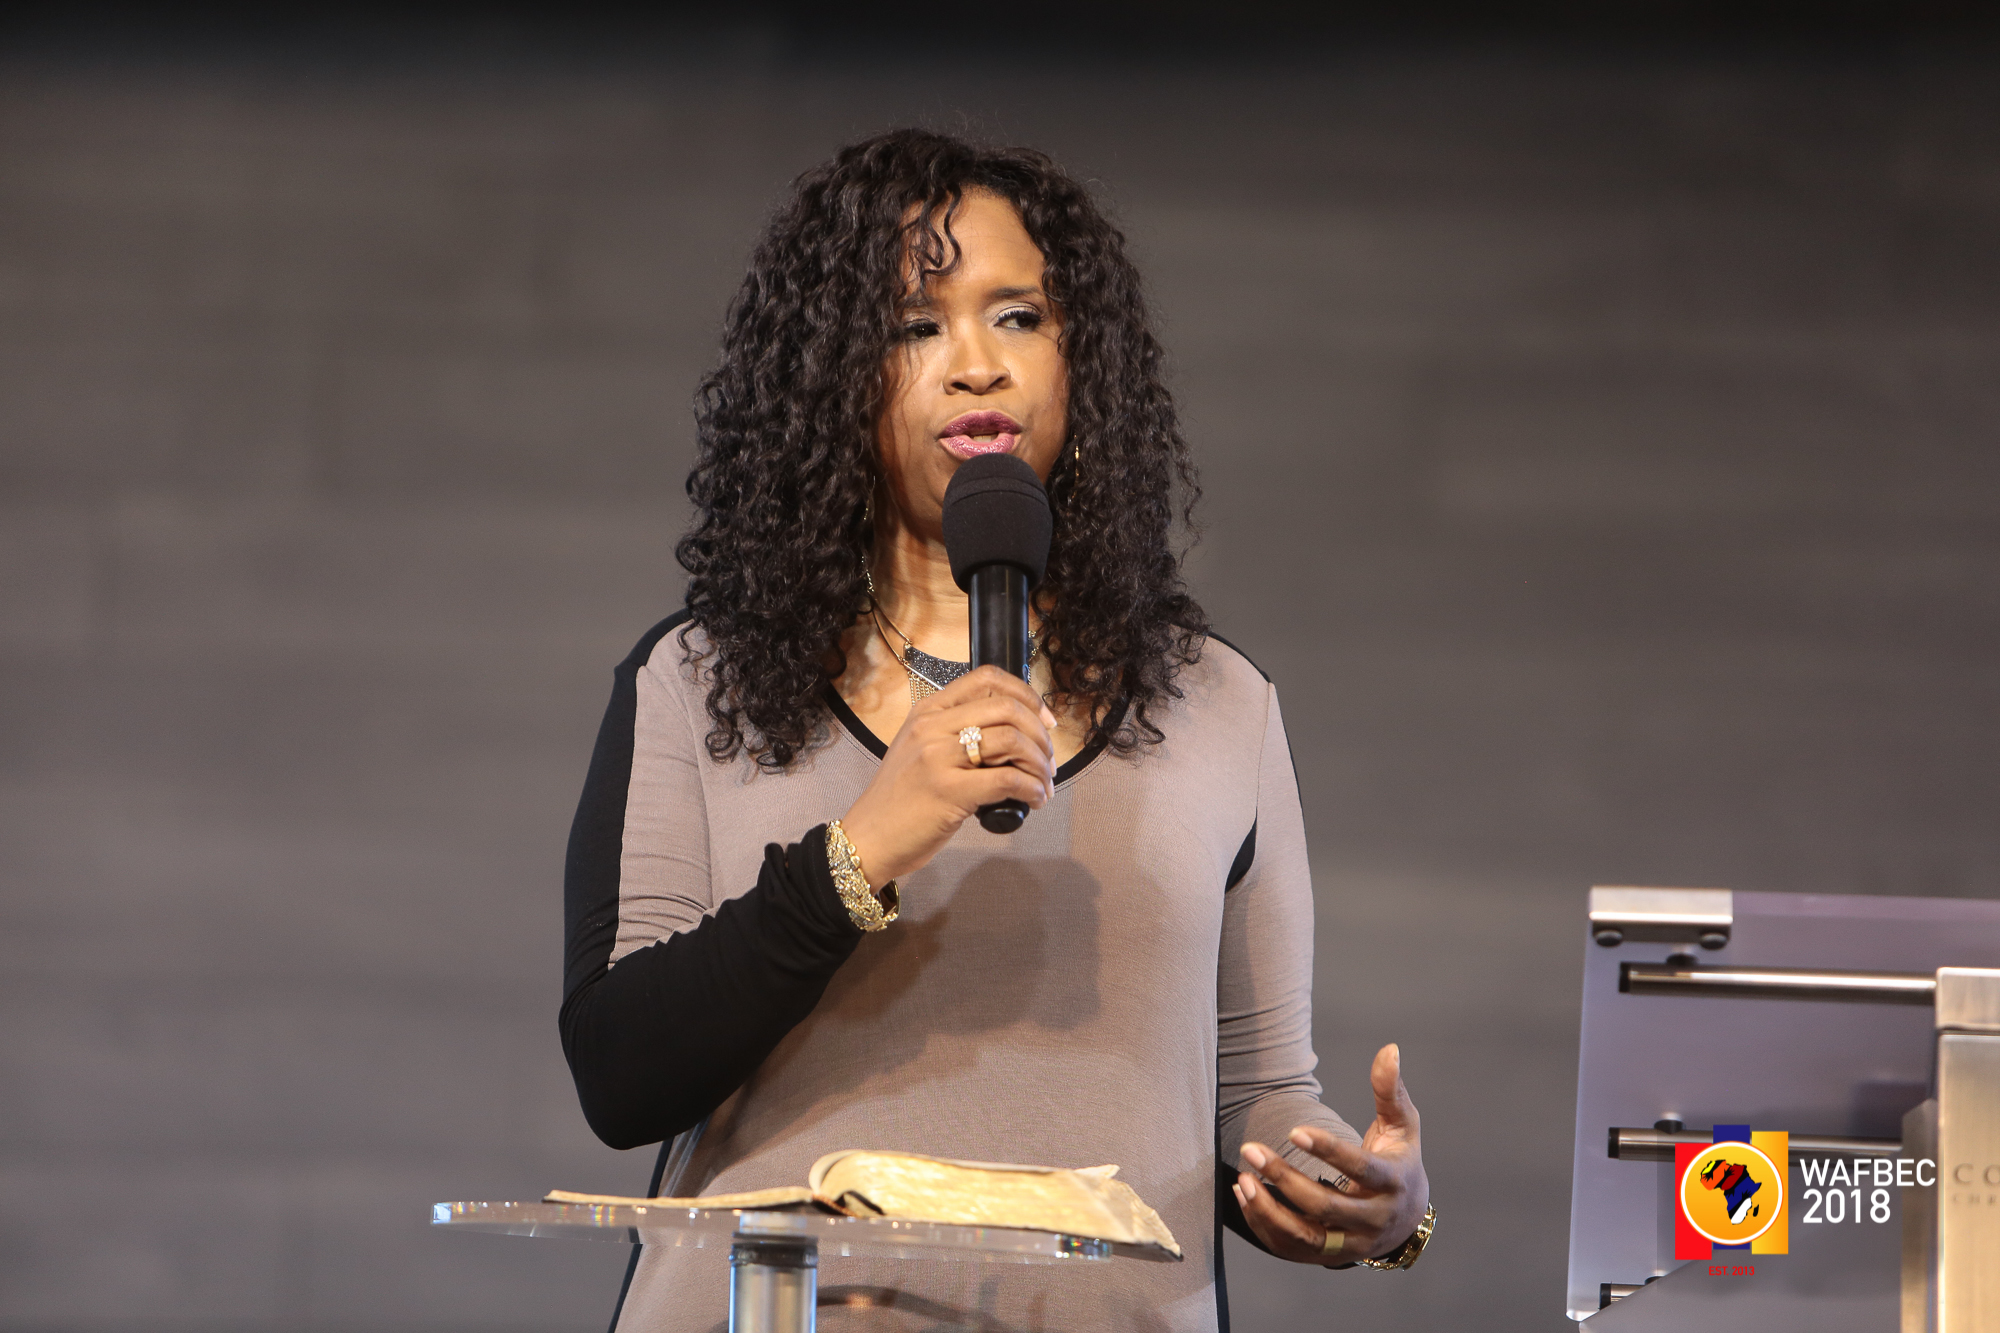 WAFBEC 2018 – Day 4 (Morning Session 3) with Pastor Taffi Dollar